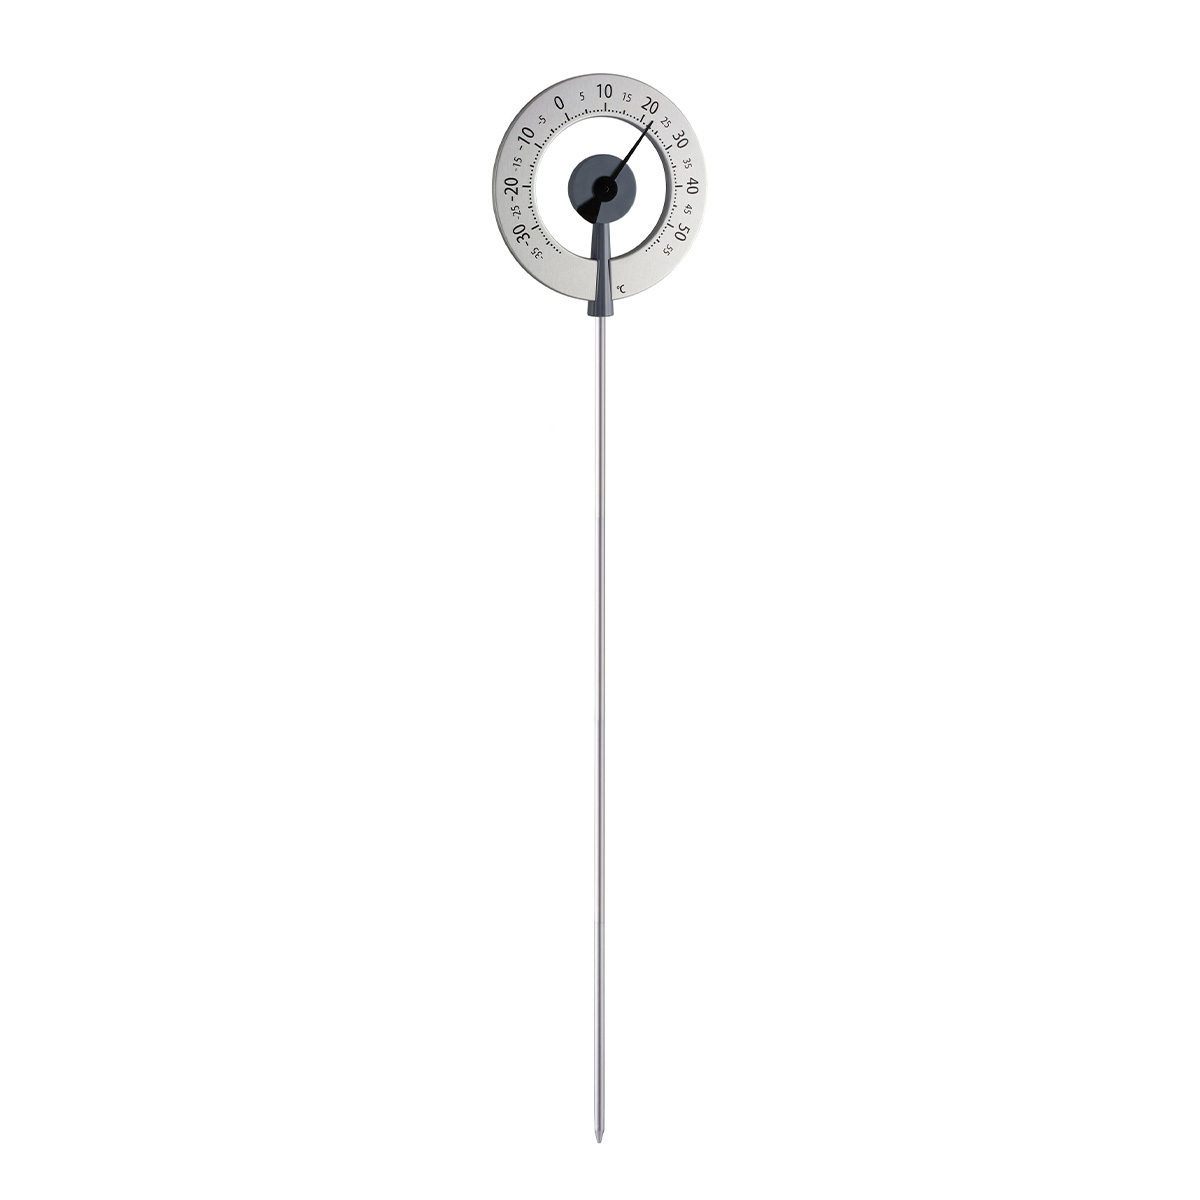 12-2055-10-analoges-design-gartenthermometer-lollipop1-1200x1200px.jpg